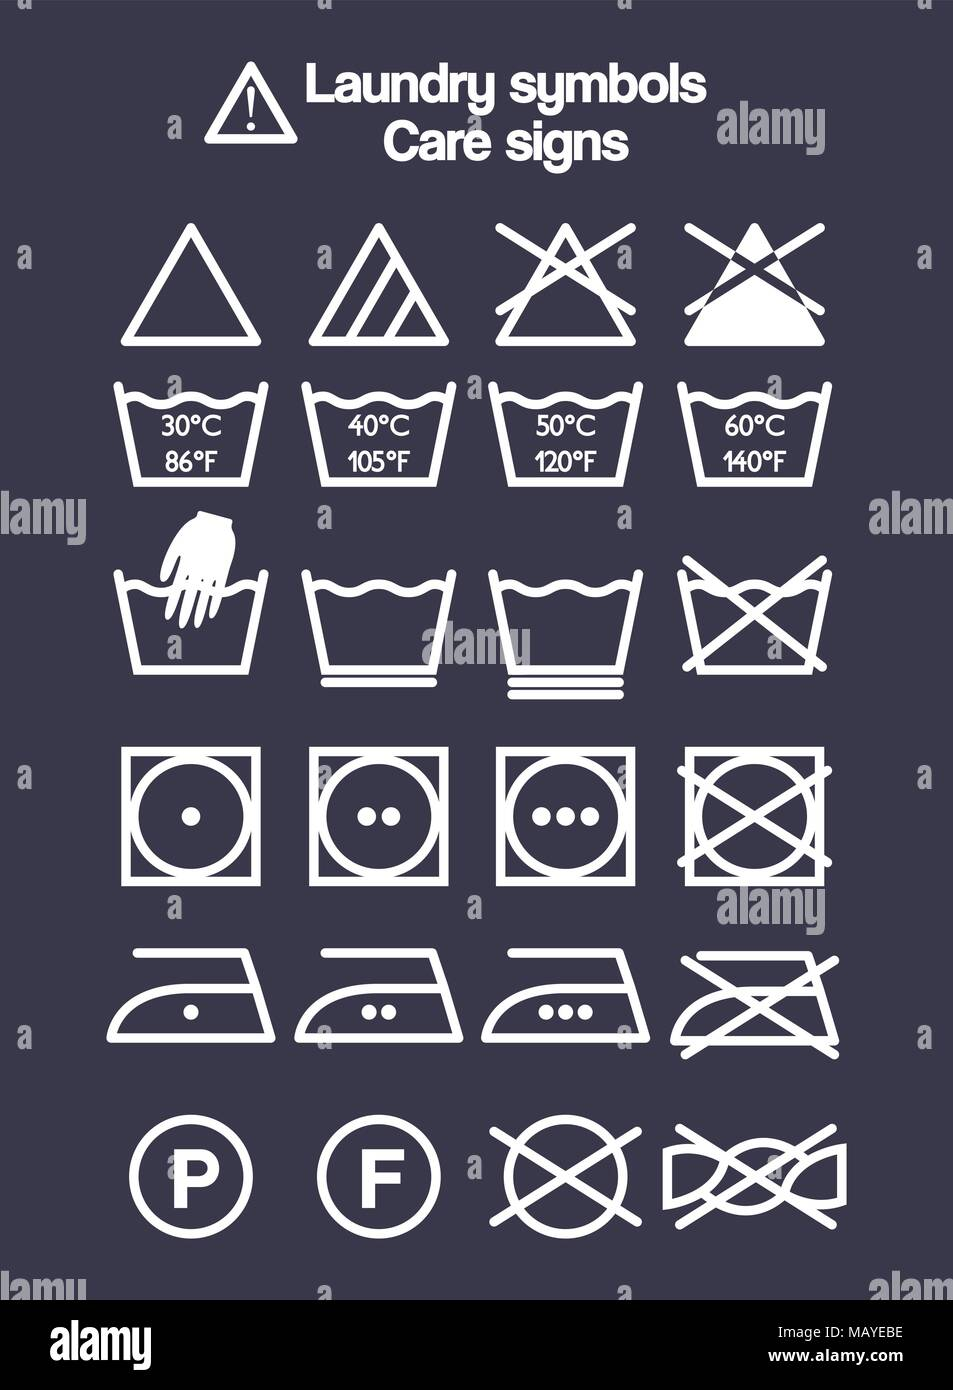 Washing symbols stock photos washing symbols stock images alamy laundry symbols set washing and care signs and labels for clothes stock image biocorpaavc Gallery